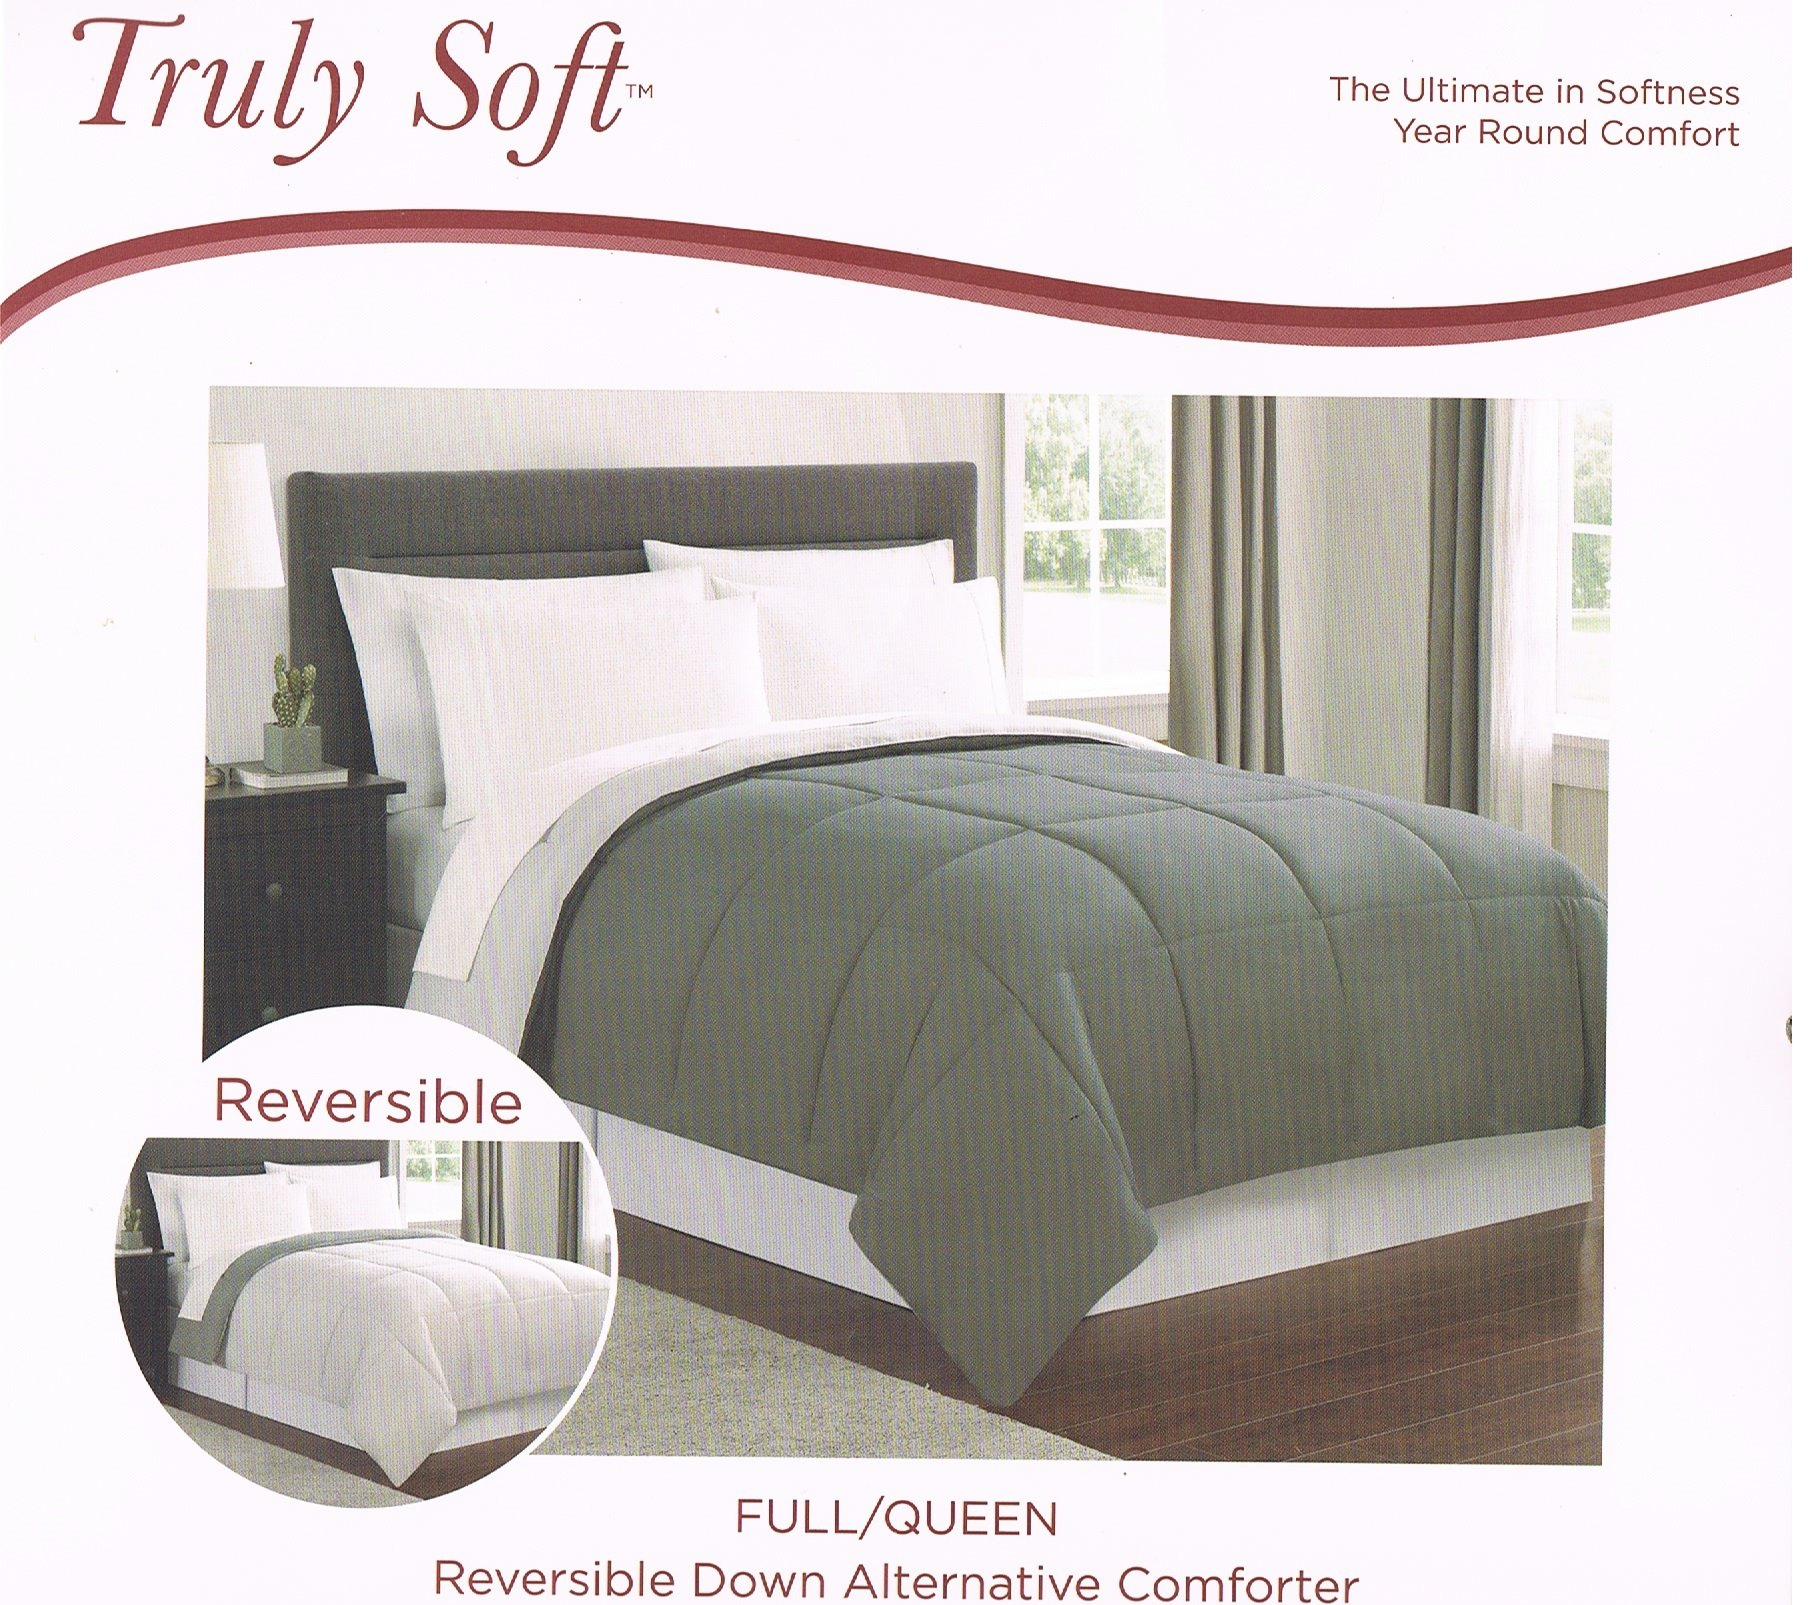 Truly Soft Reversible Down Alternative Comforter Dark and Light Gray Queen by Truly Soft Everyday